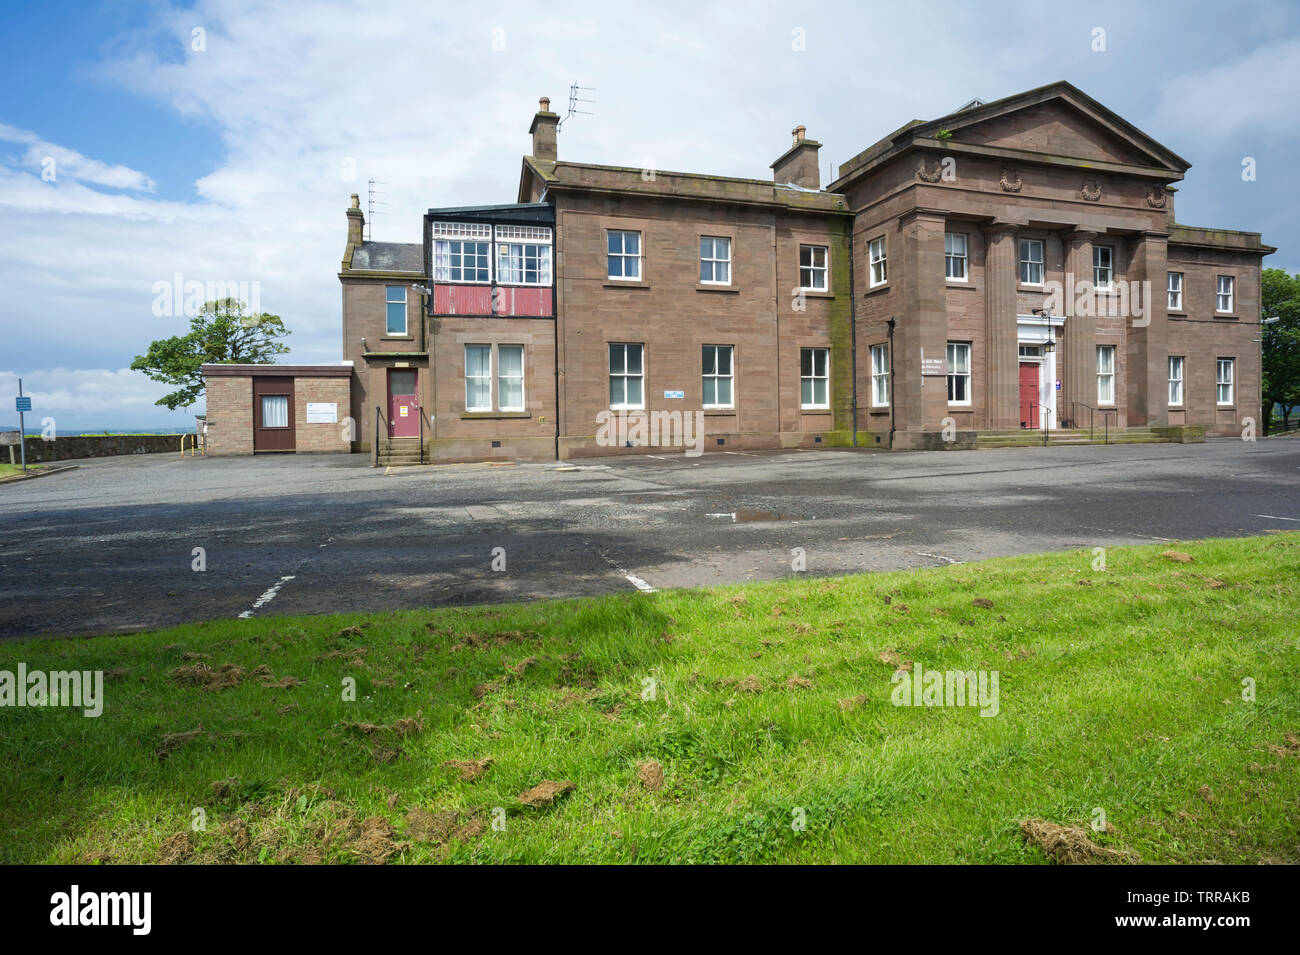 The Old Montrose Royal Infirmary Gp And Maternity Unit Which Is Now And The Site Up For Sale Montrose Angus Scotland Uk Stock Photo Alamy